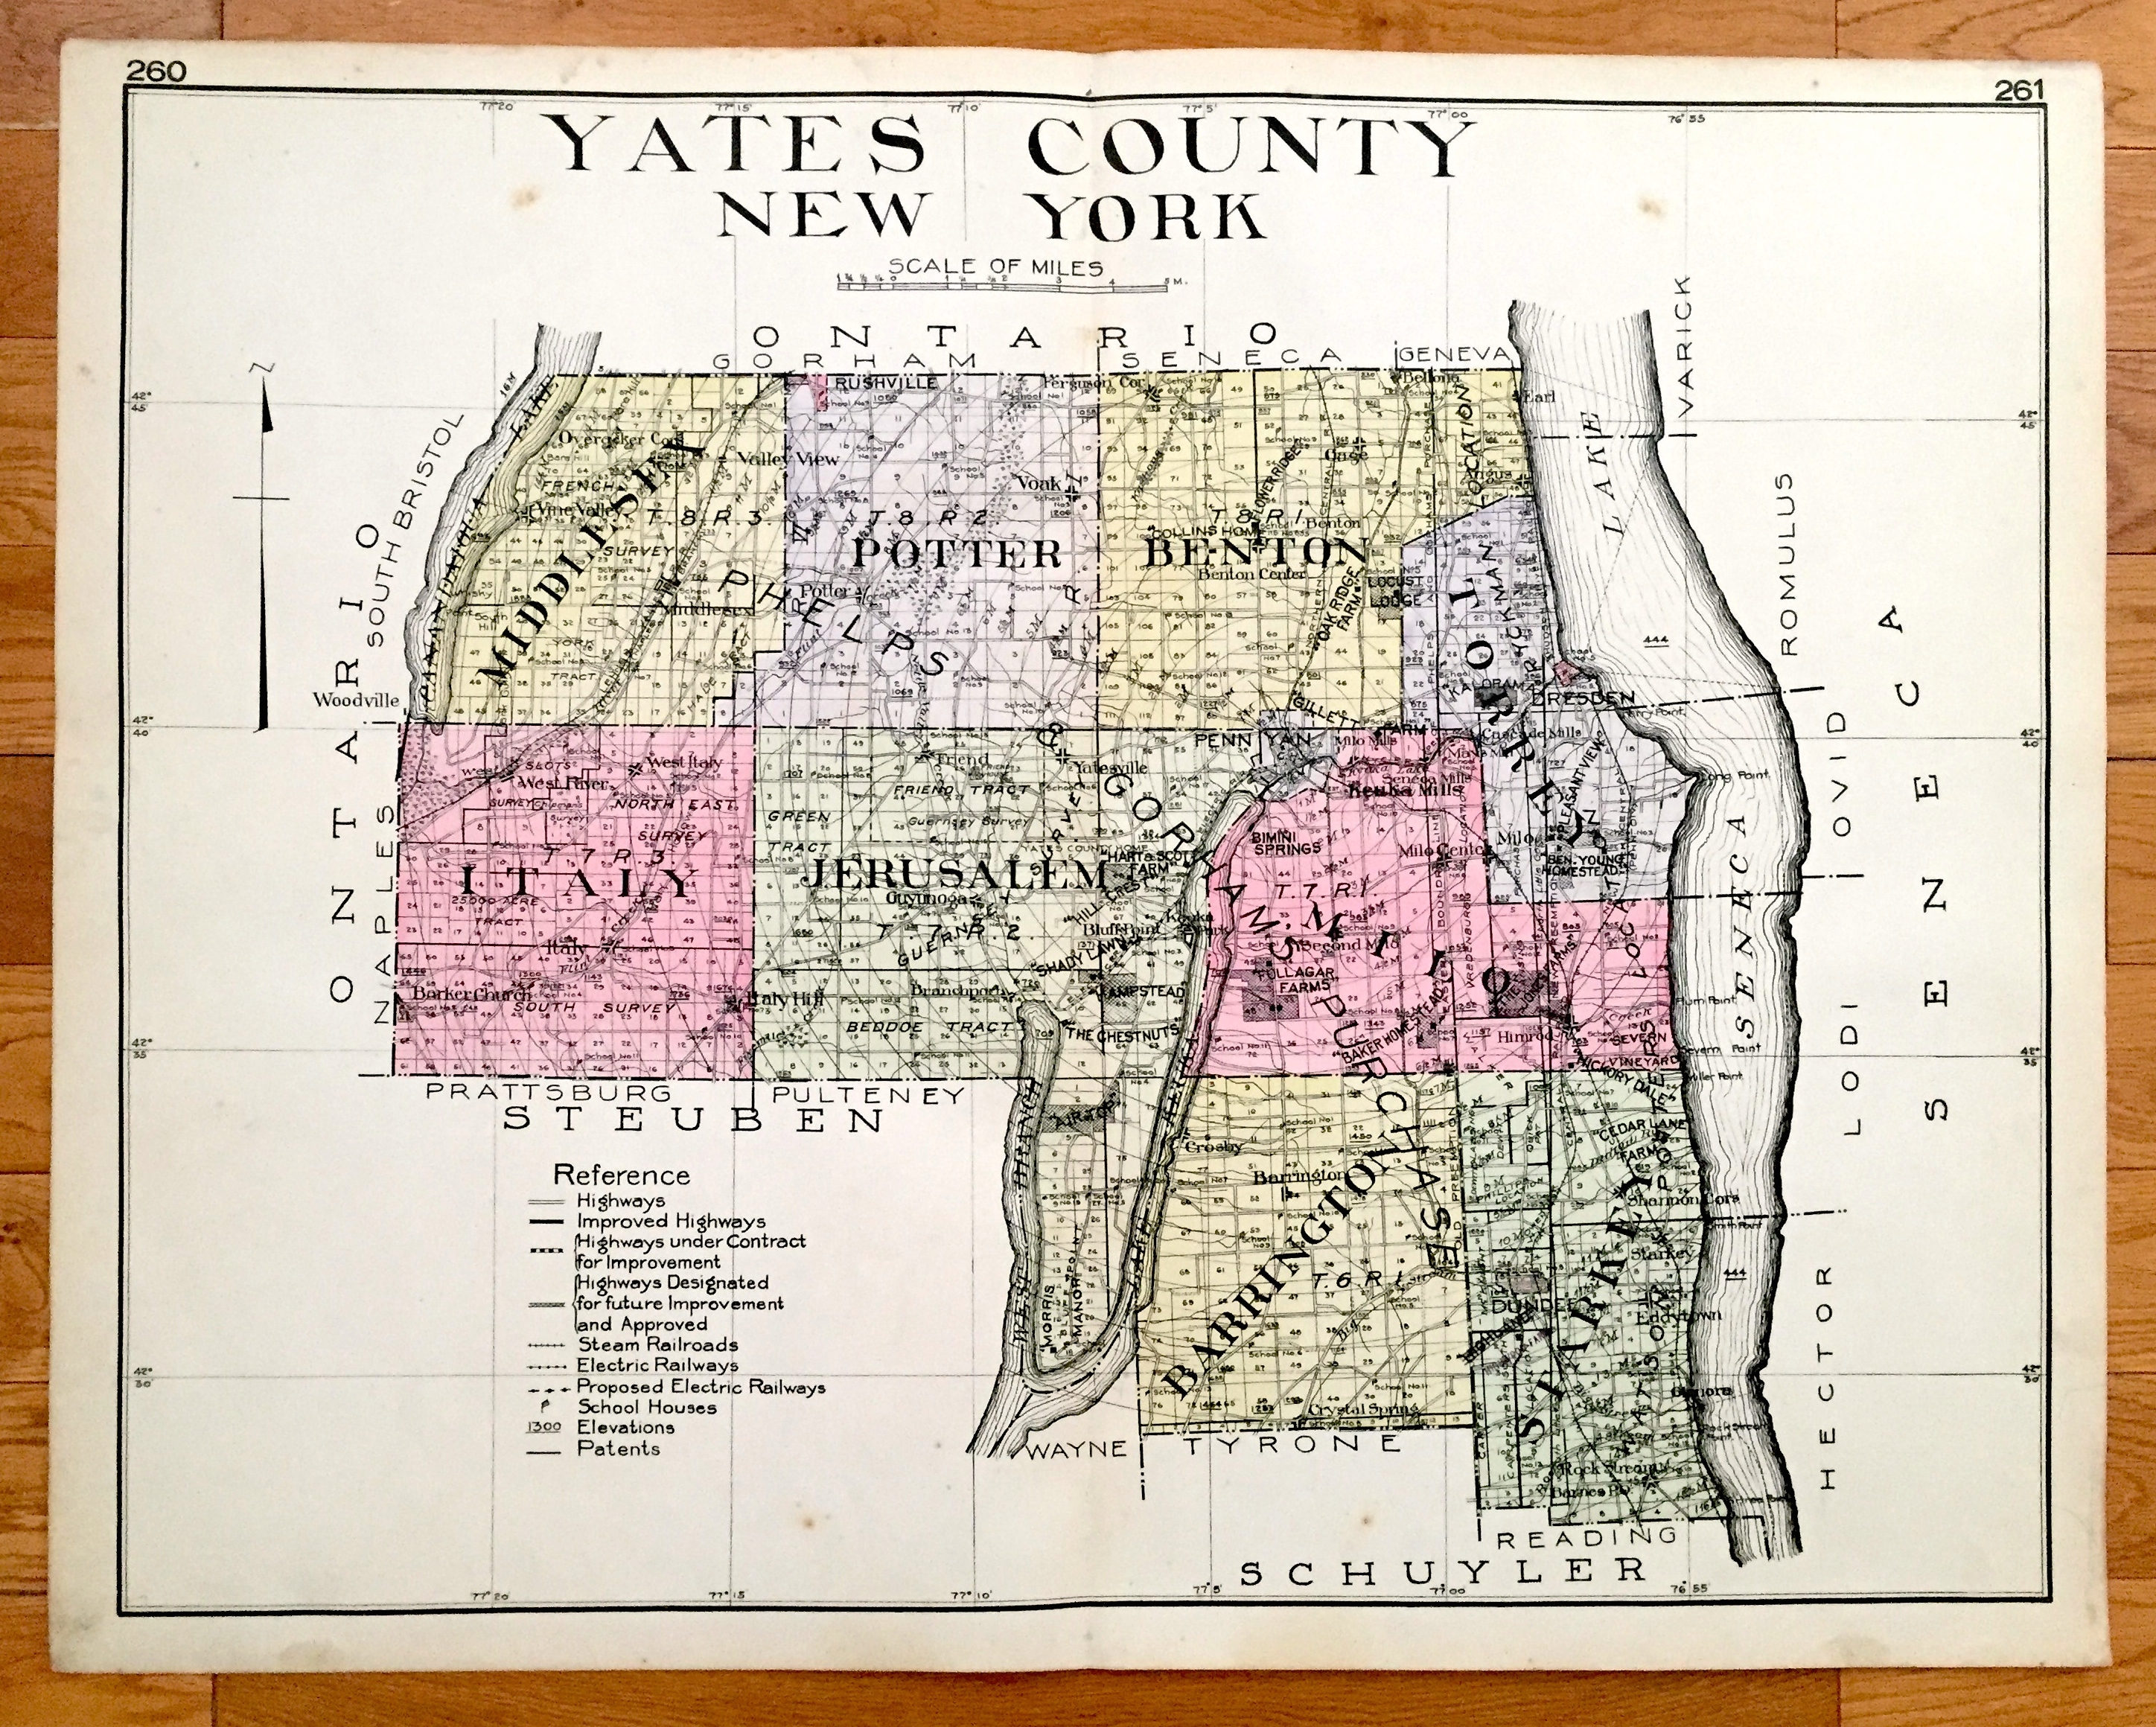 Antique Yates County, New York 1912 New Century Atlas Map – Penn on